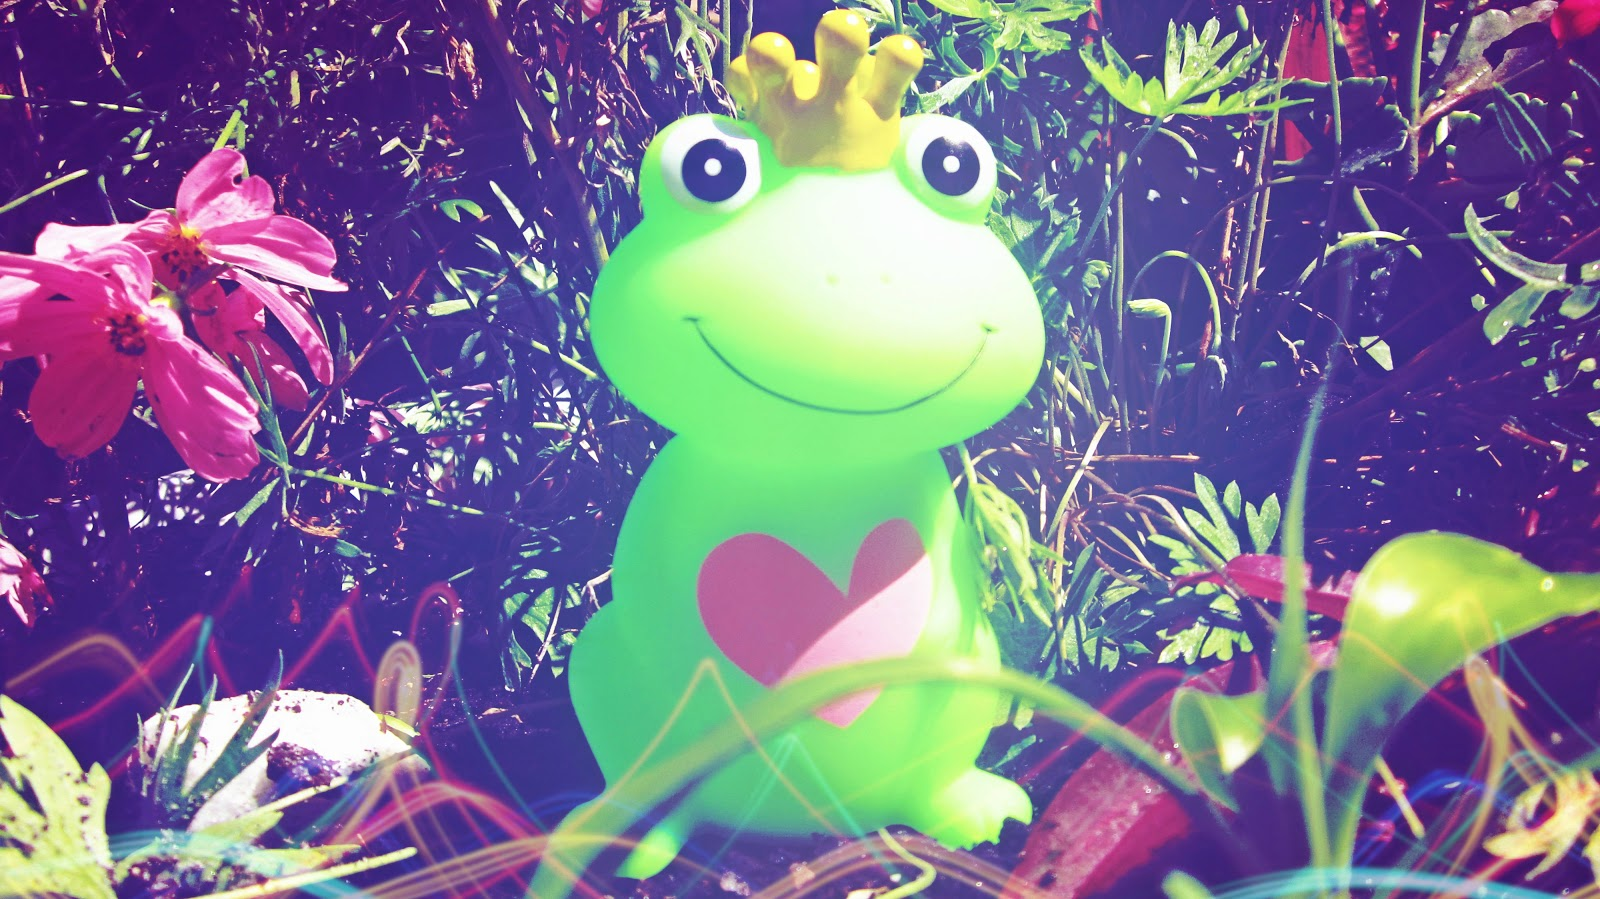 I've had to kiss a few frogs, green frog toy in a garden full of colorful flowers and plants, in direct sunlight